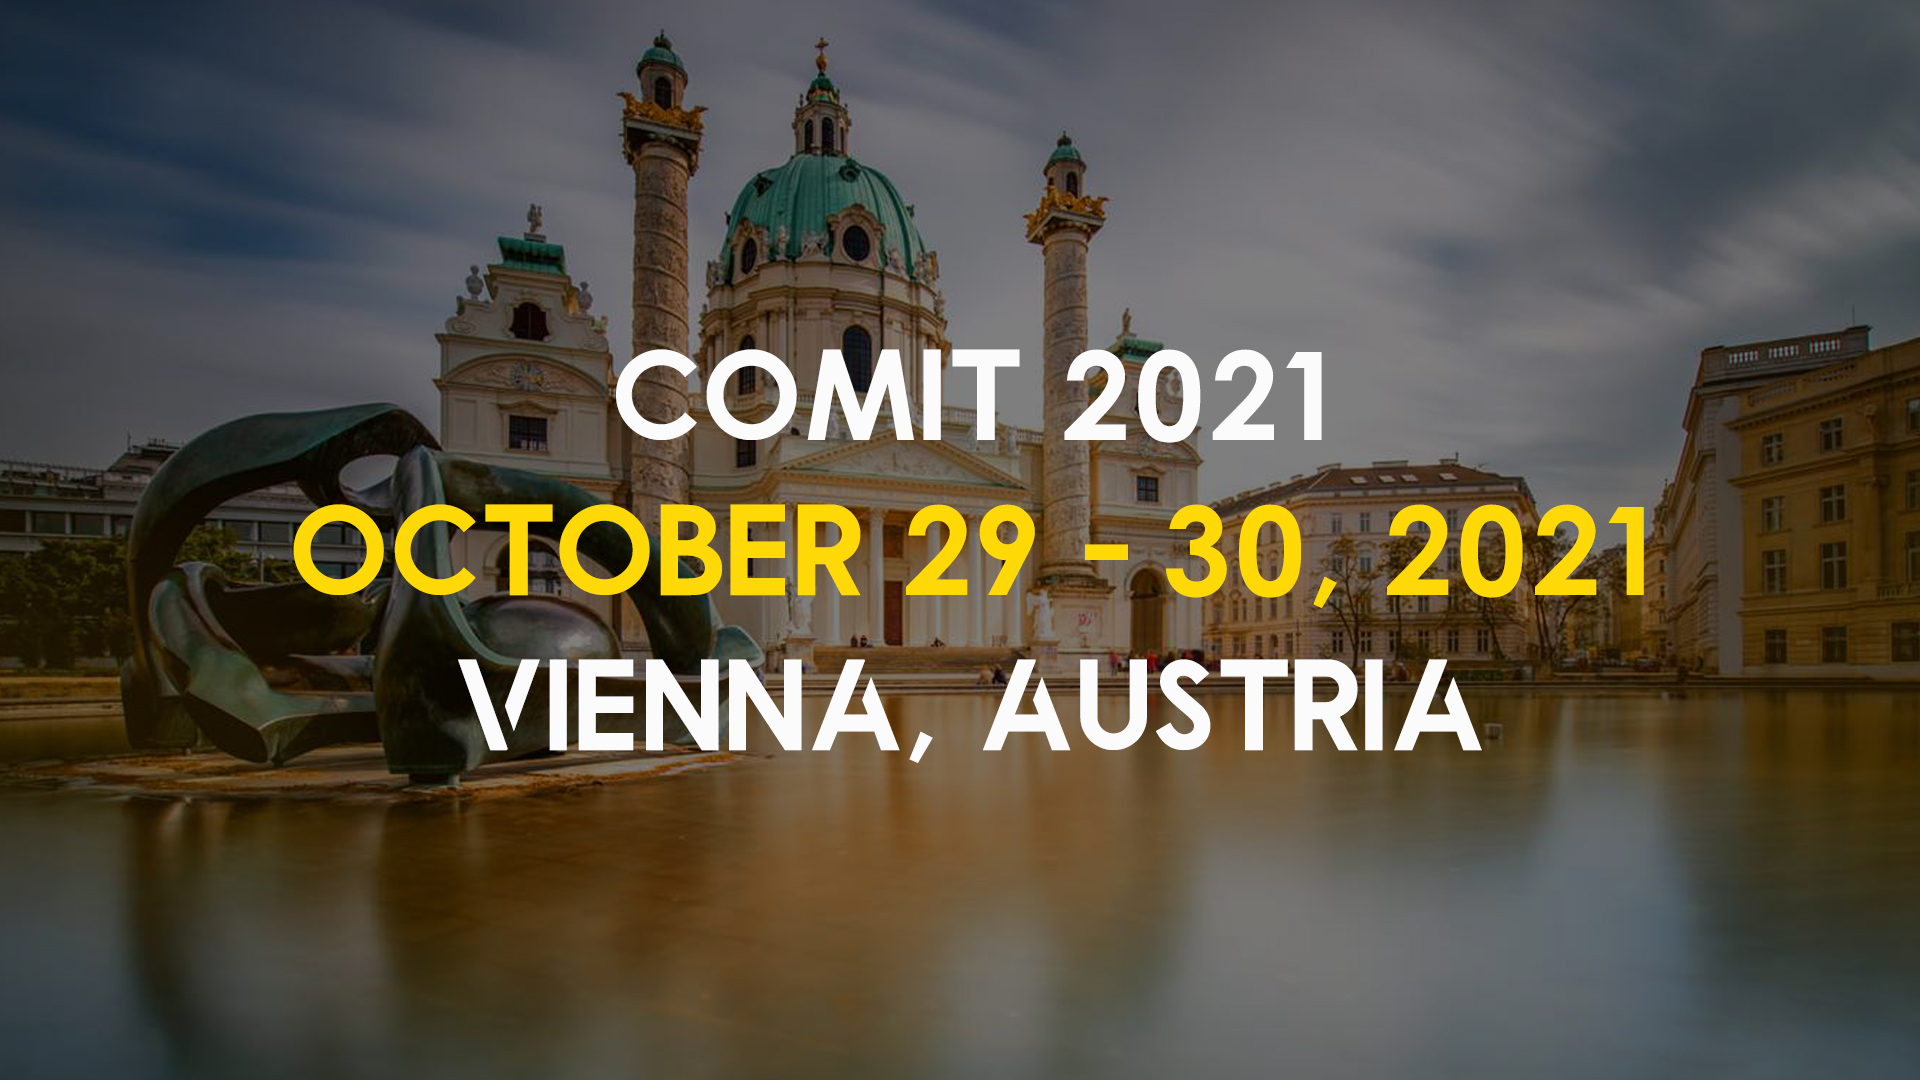 5th International Conference on Computer Science and Information Technology (COMIT 2021)